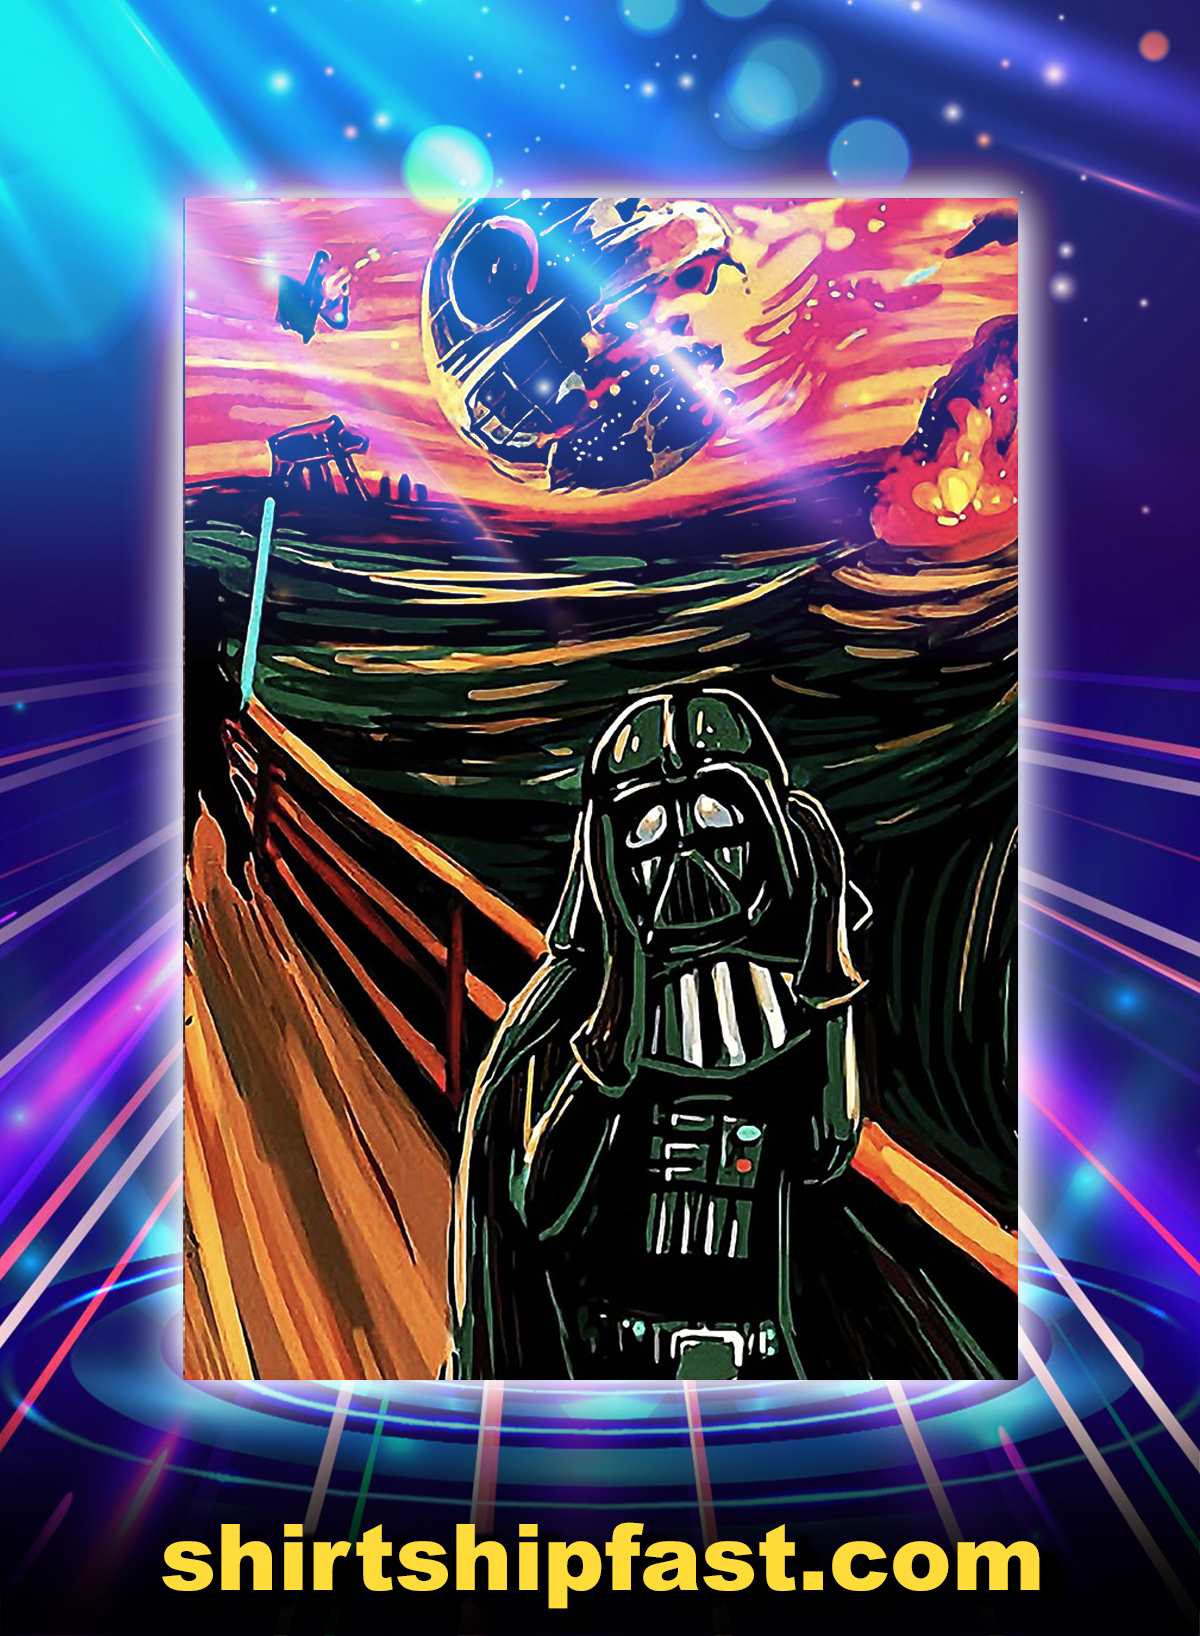 Darth vader and death star scream poster - A4